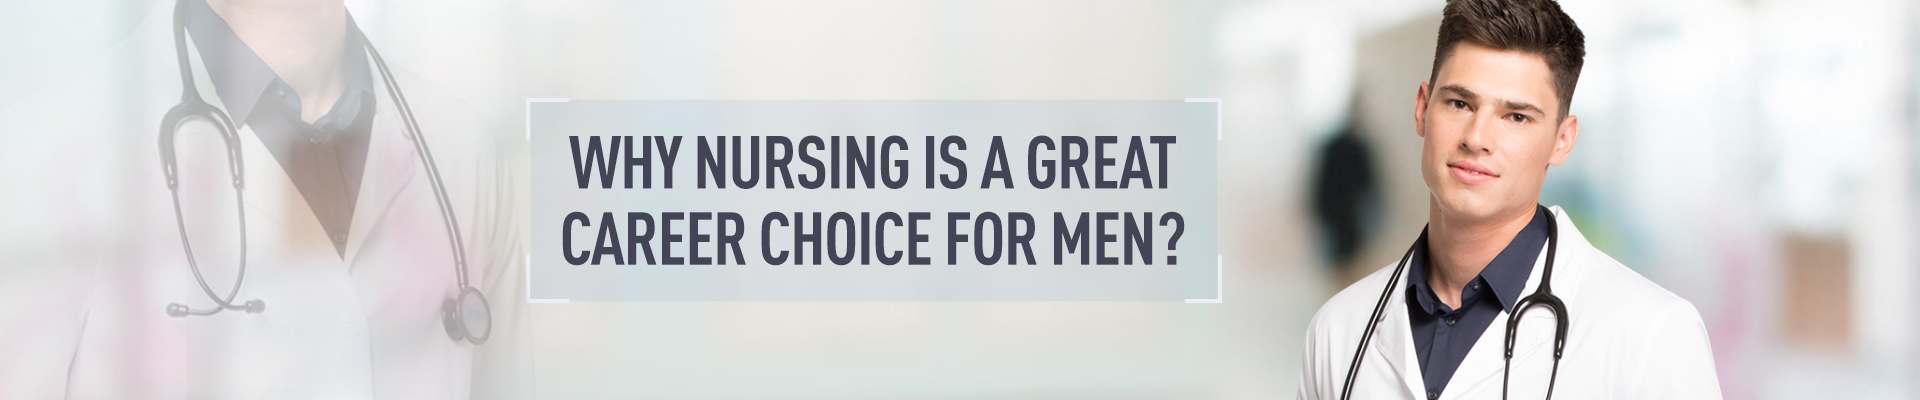 Why Nursing Is A Great Career Choice For Men?